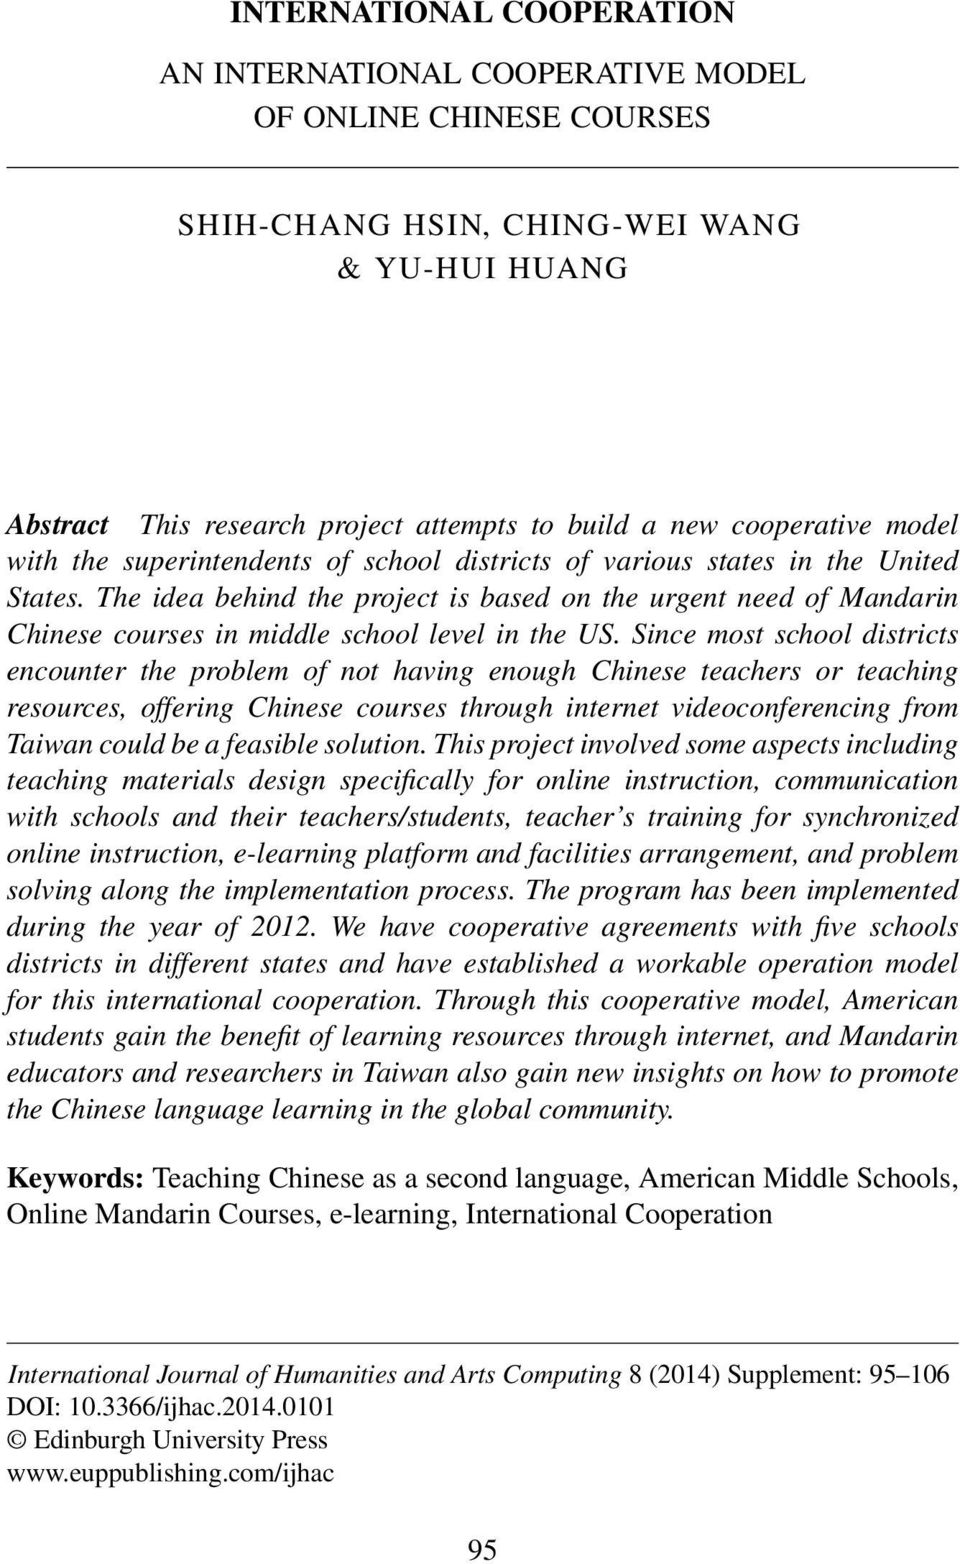 The idea behind the project is based on the urgent need of Mandarin Chinese courses in middle school level in the US.